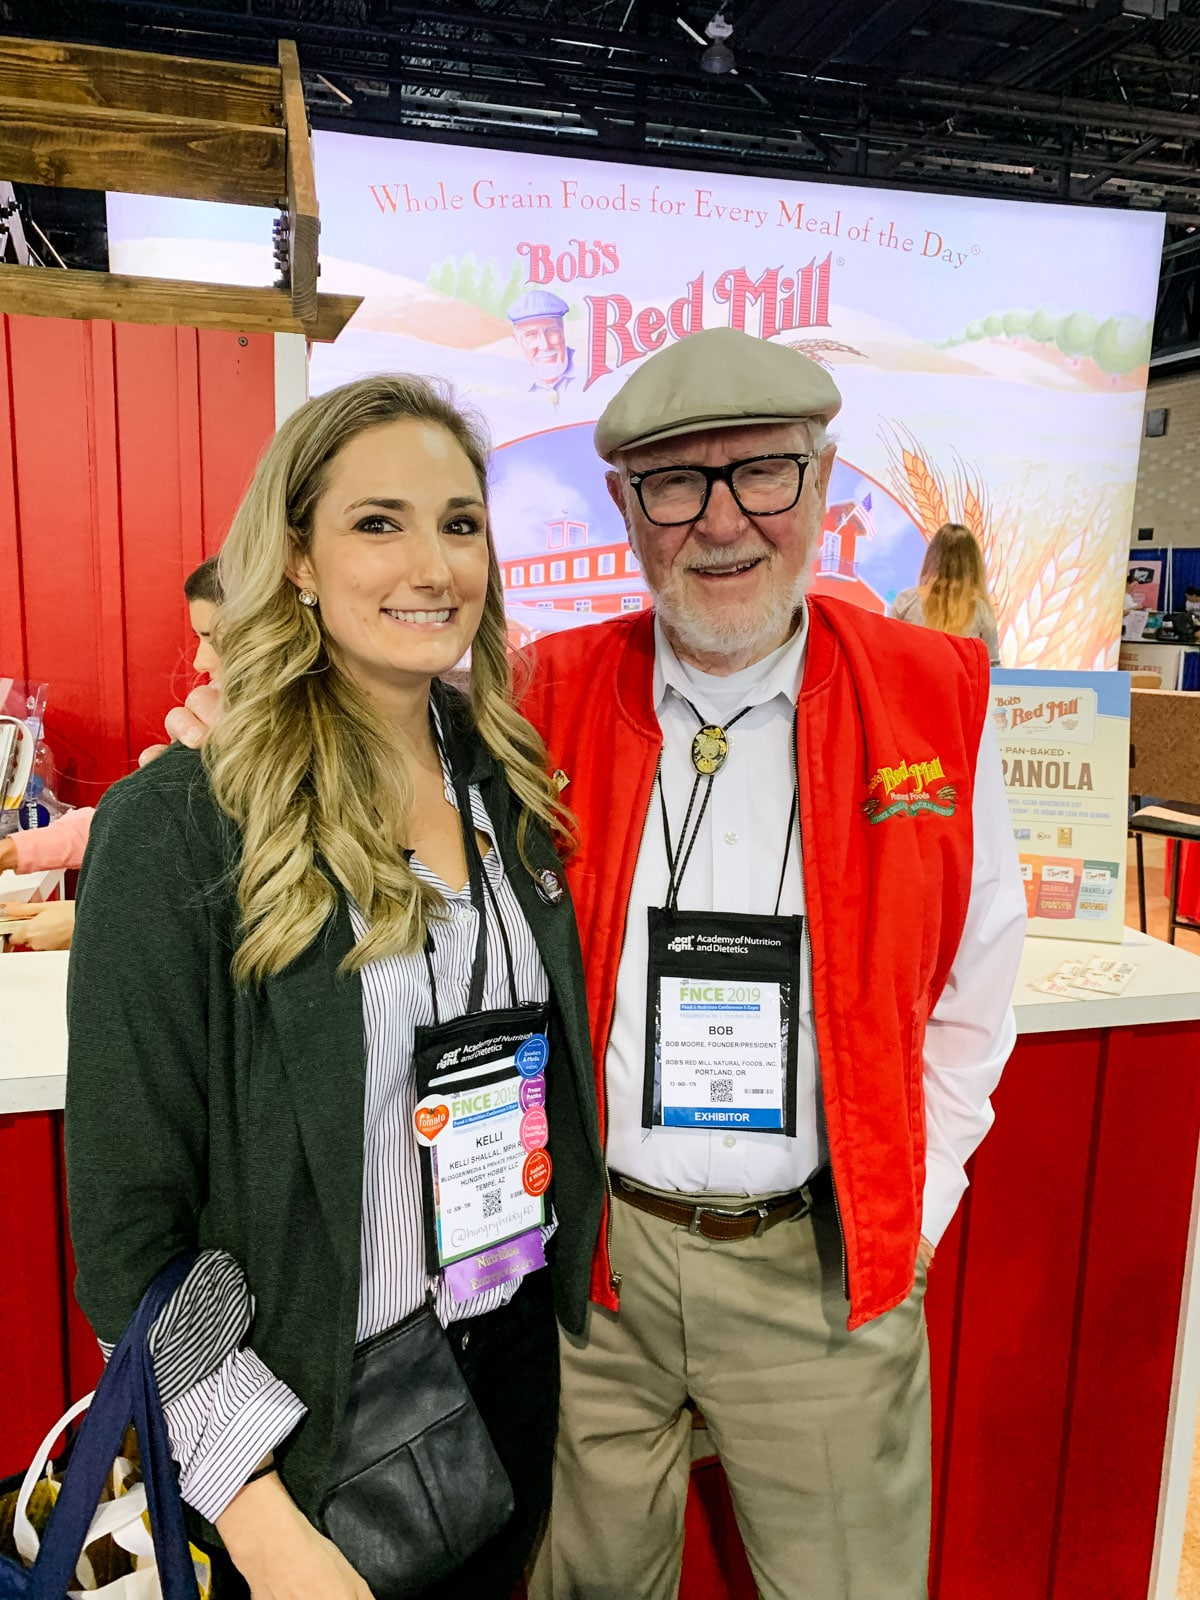 FNCE 2019 -bobs red mill meeting bob